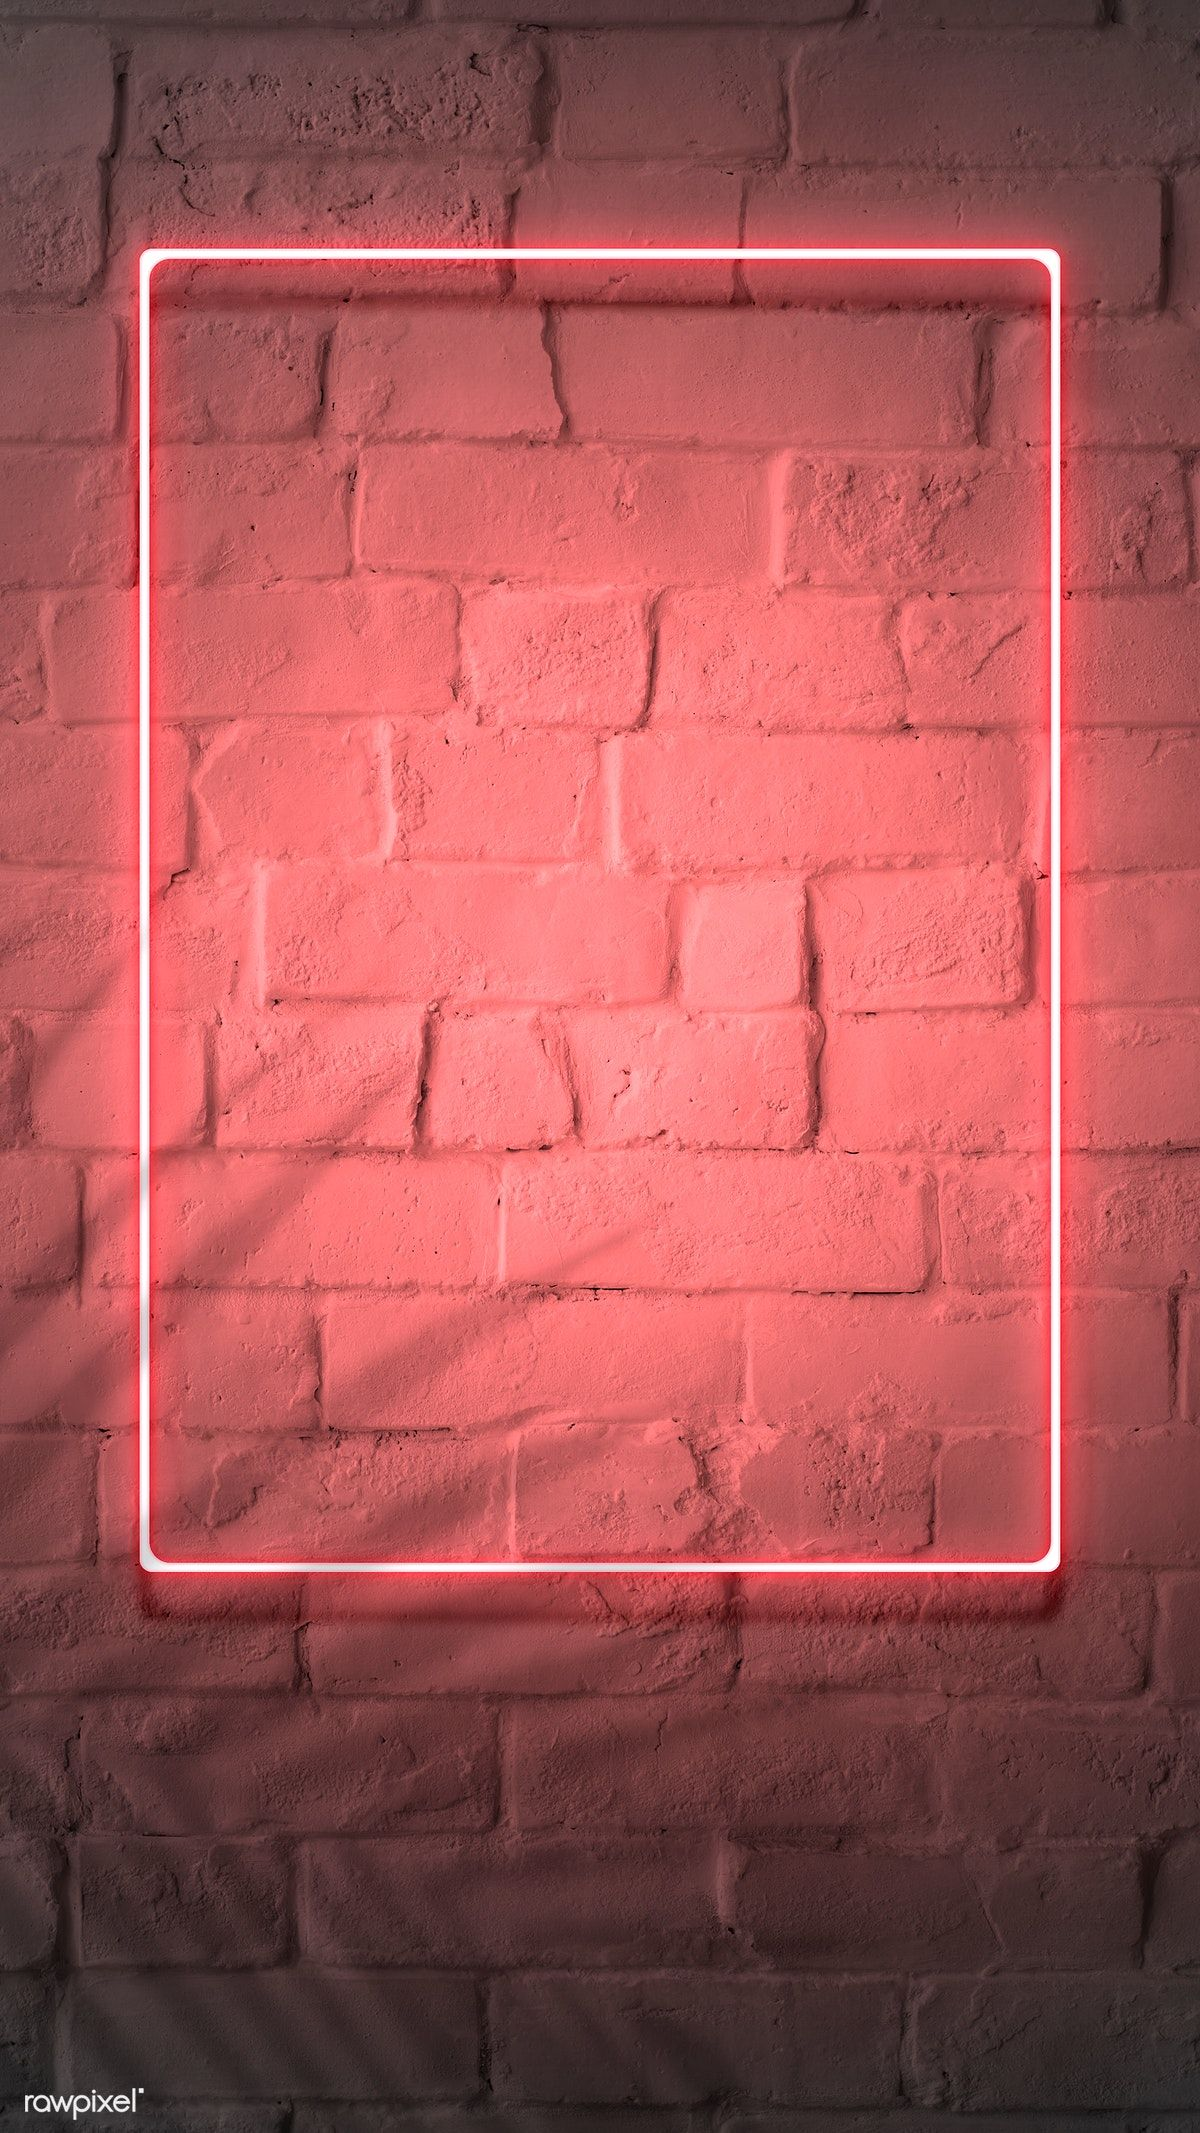 Download premium image of Neon red frame on a brick wall 894328